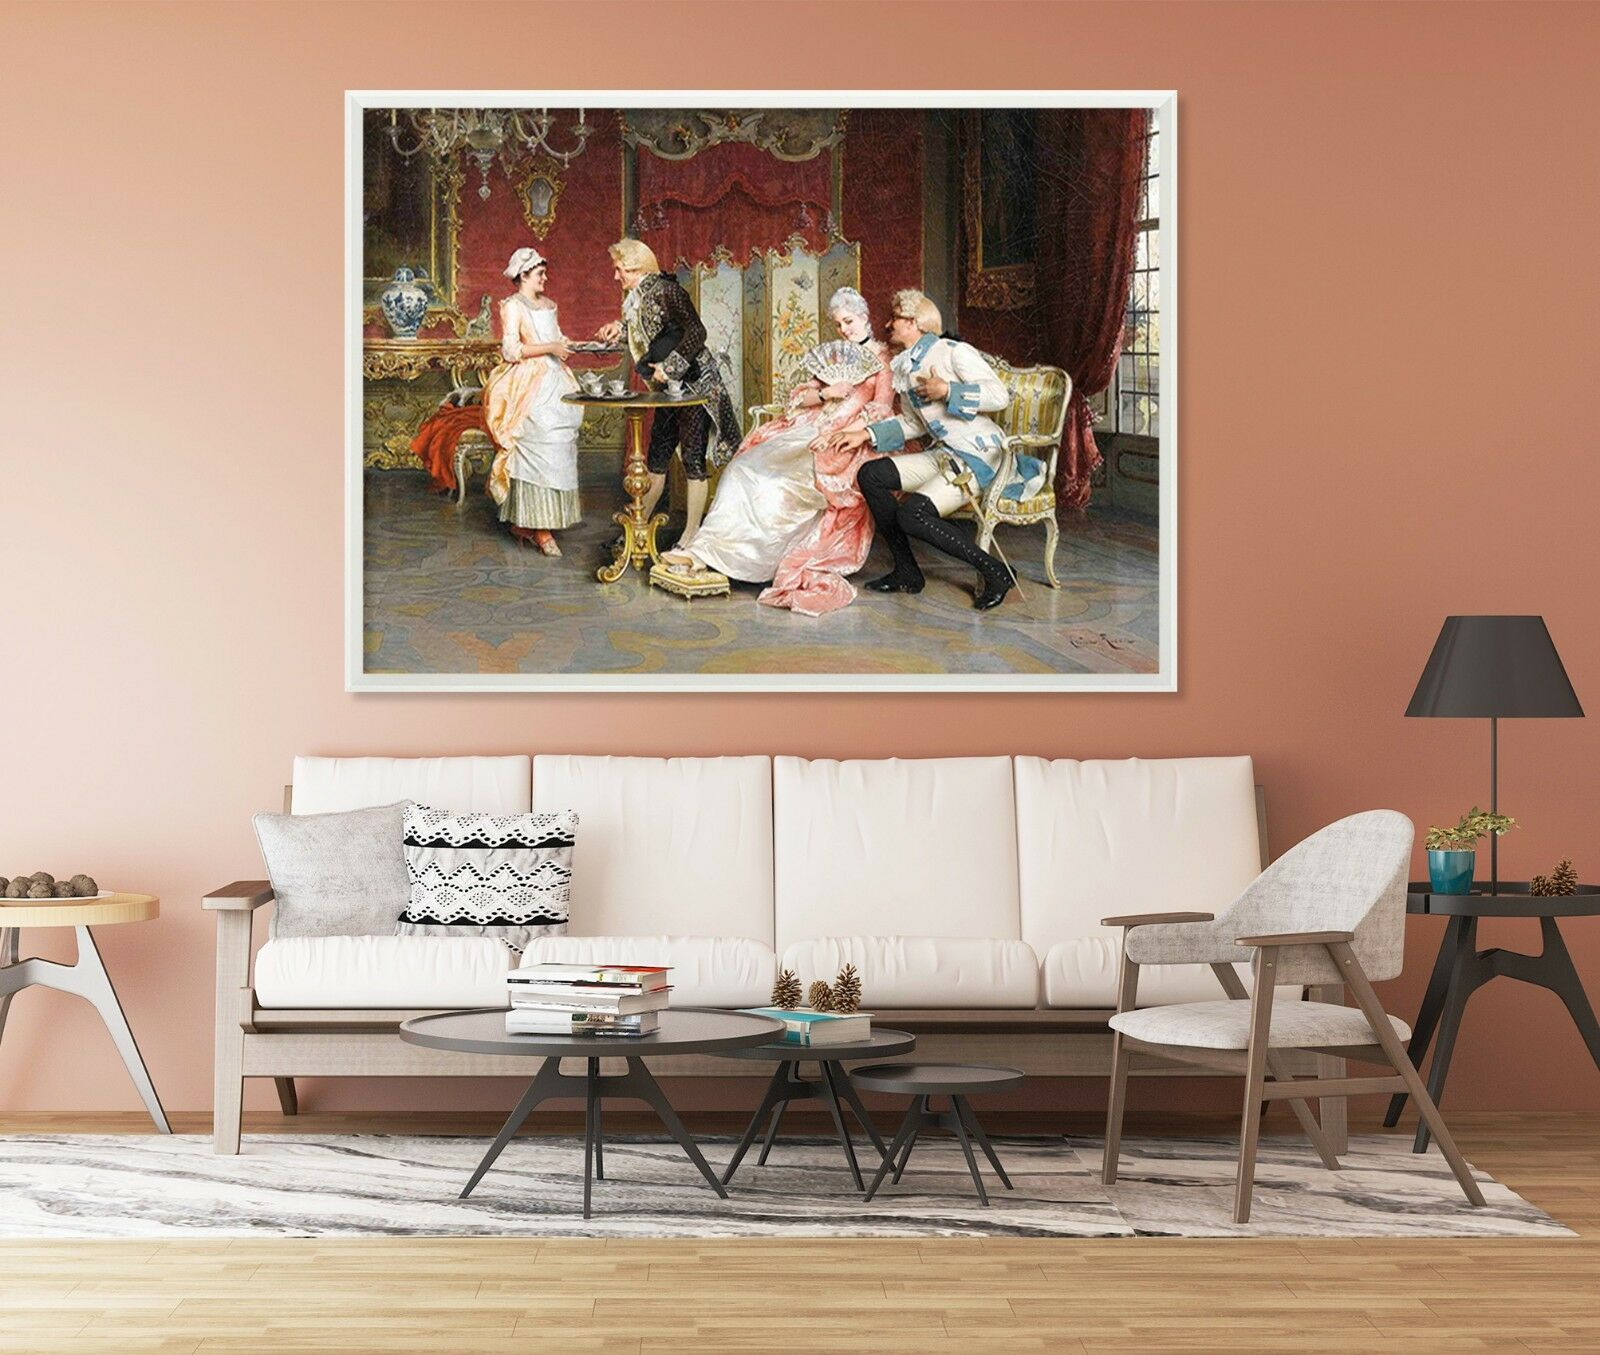 3D Painting 675 Fake Framed Poster Home Decor Print Unique Art Summer Nnnufa615 Posters Prints